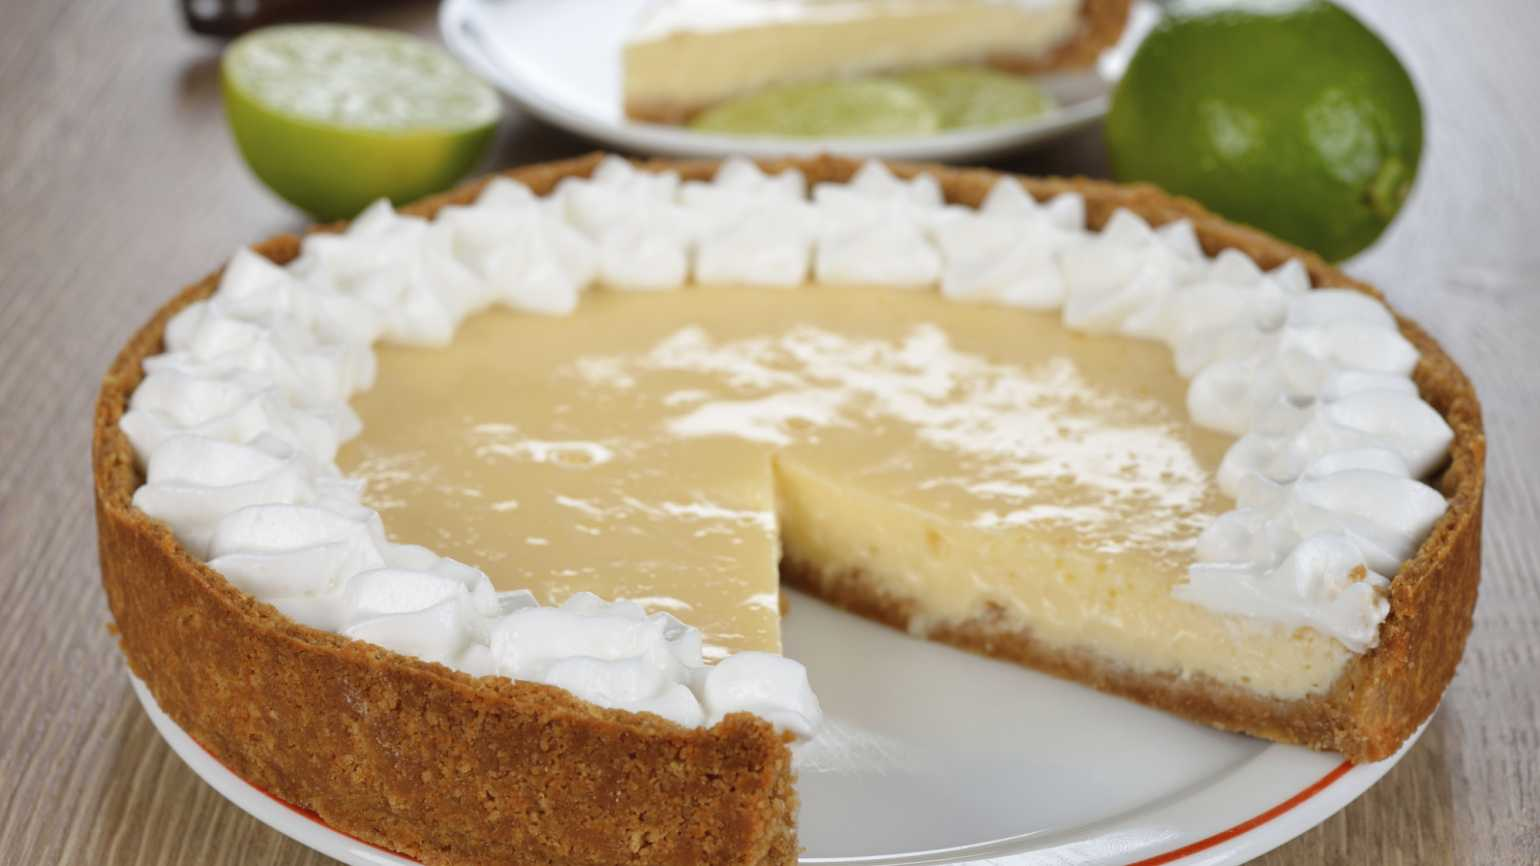 Key Lime Pie with one slice missing